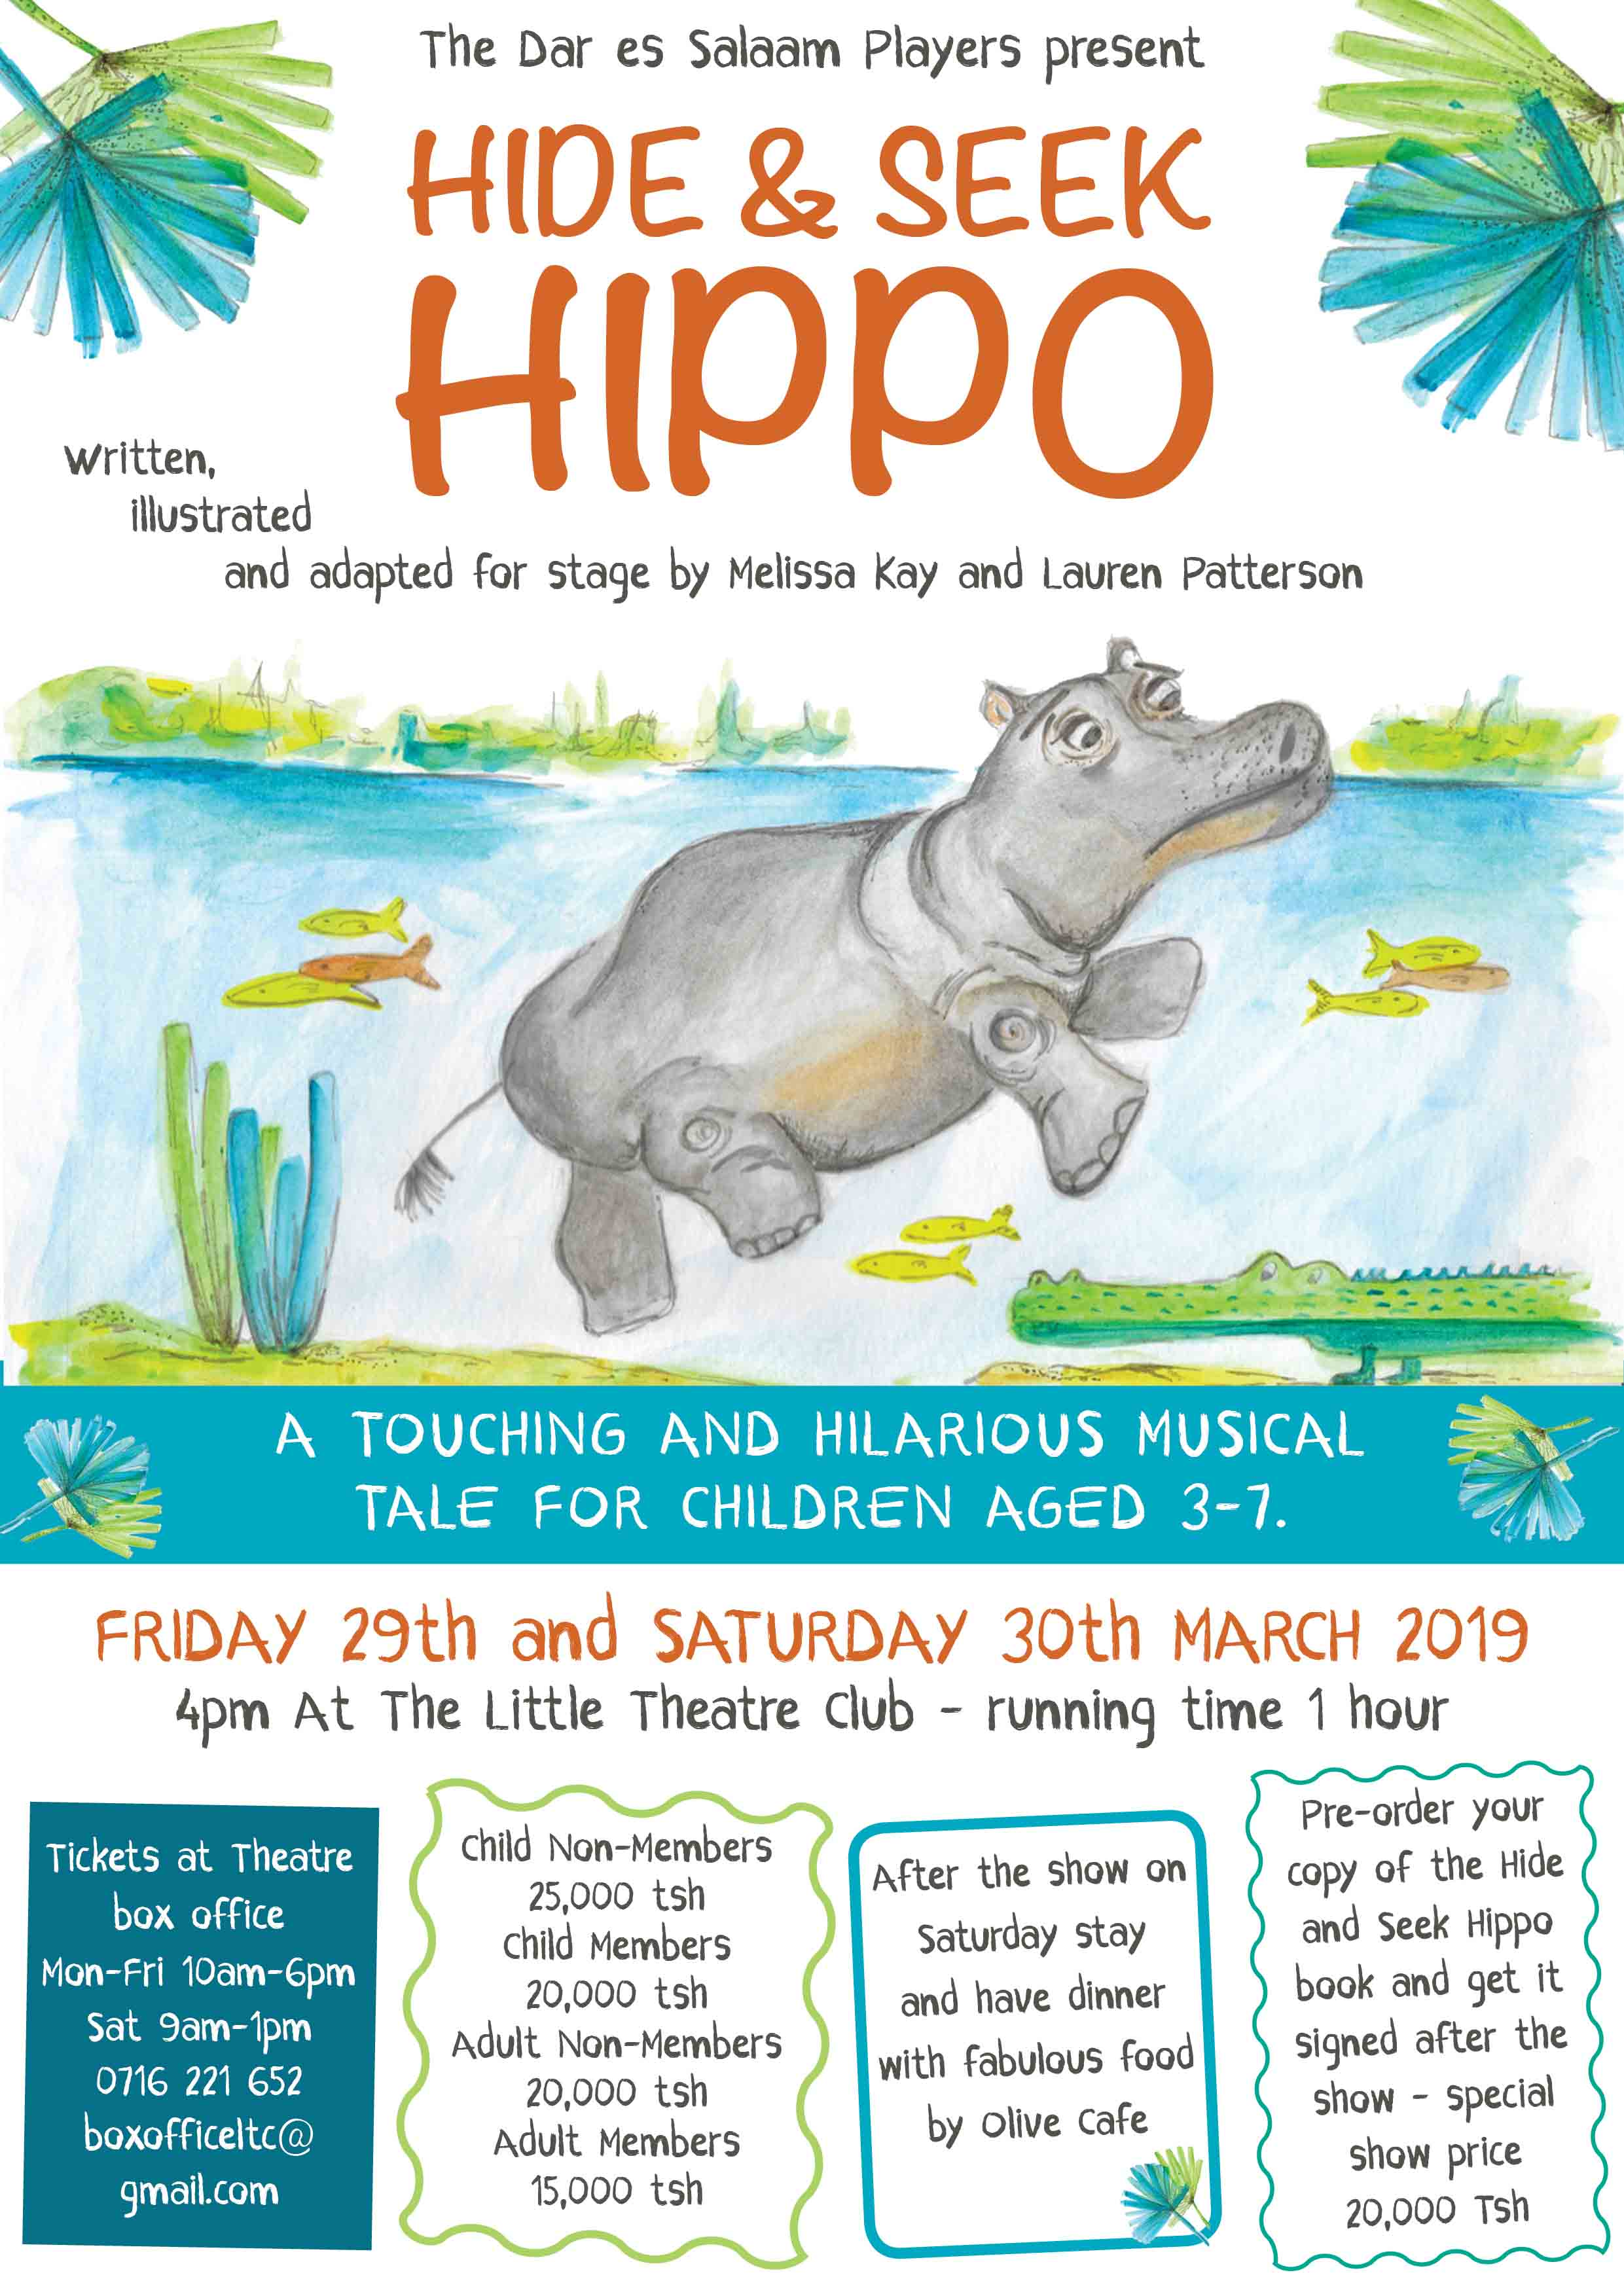 Hippo on stage!